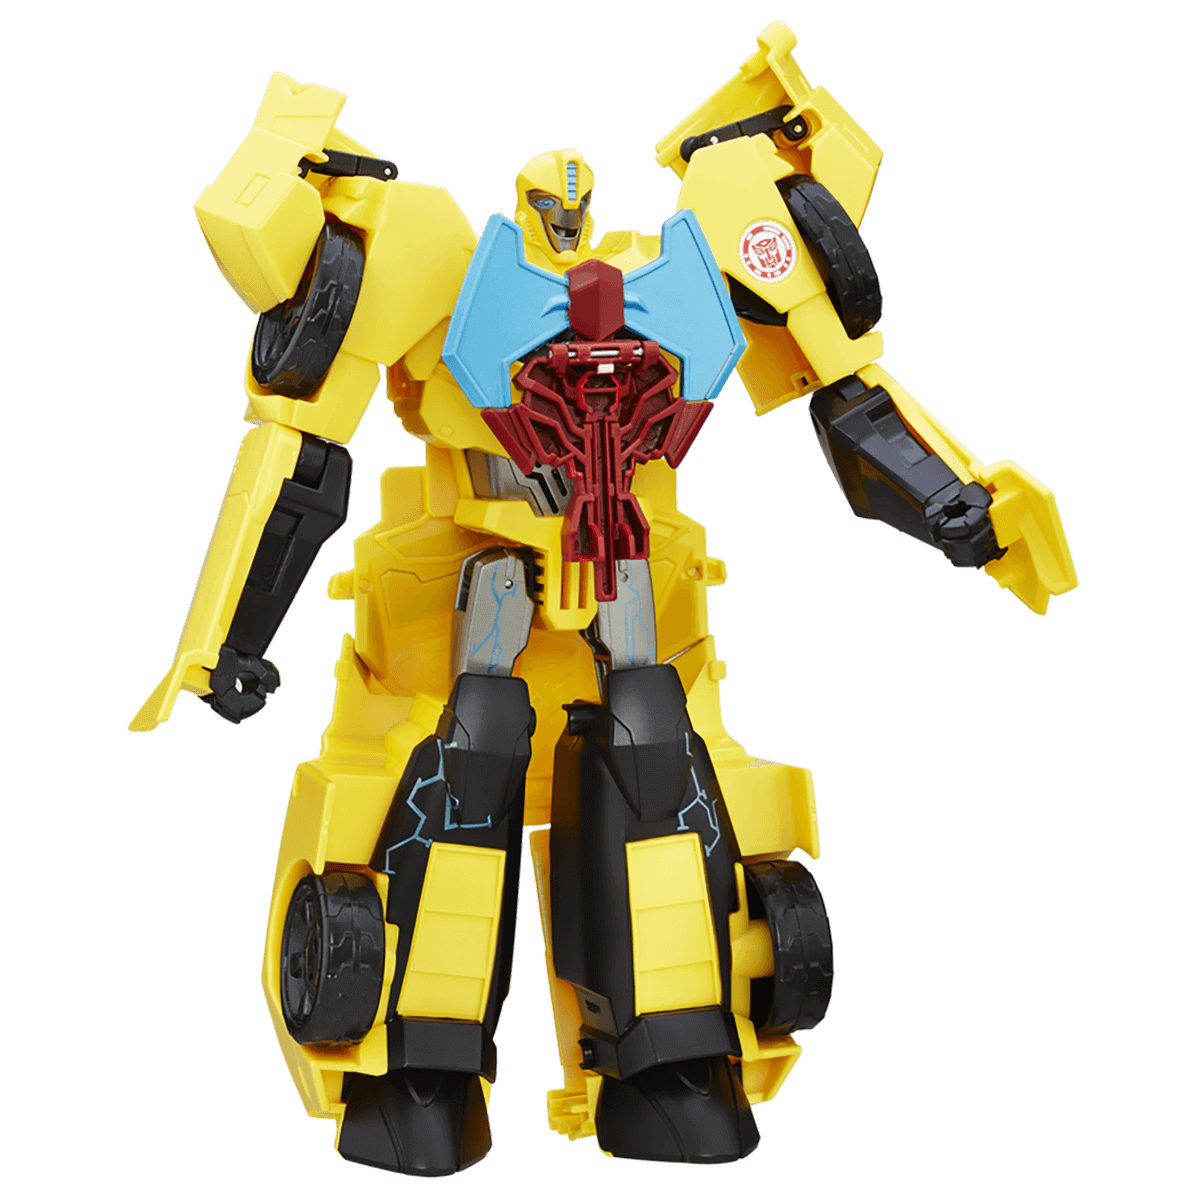 Transformers Robots In Disguise Power Surge Bumblebee And Buzzstrike The Entertainer